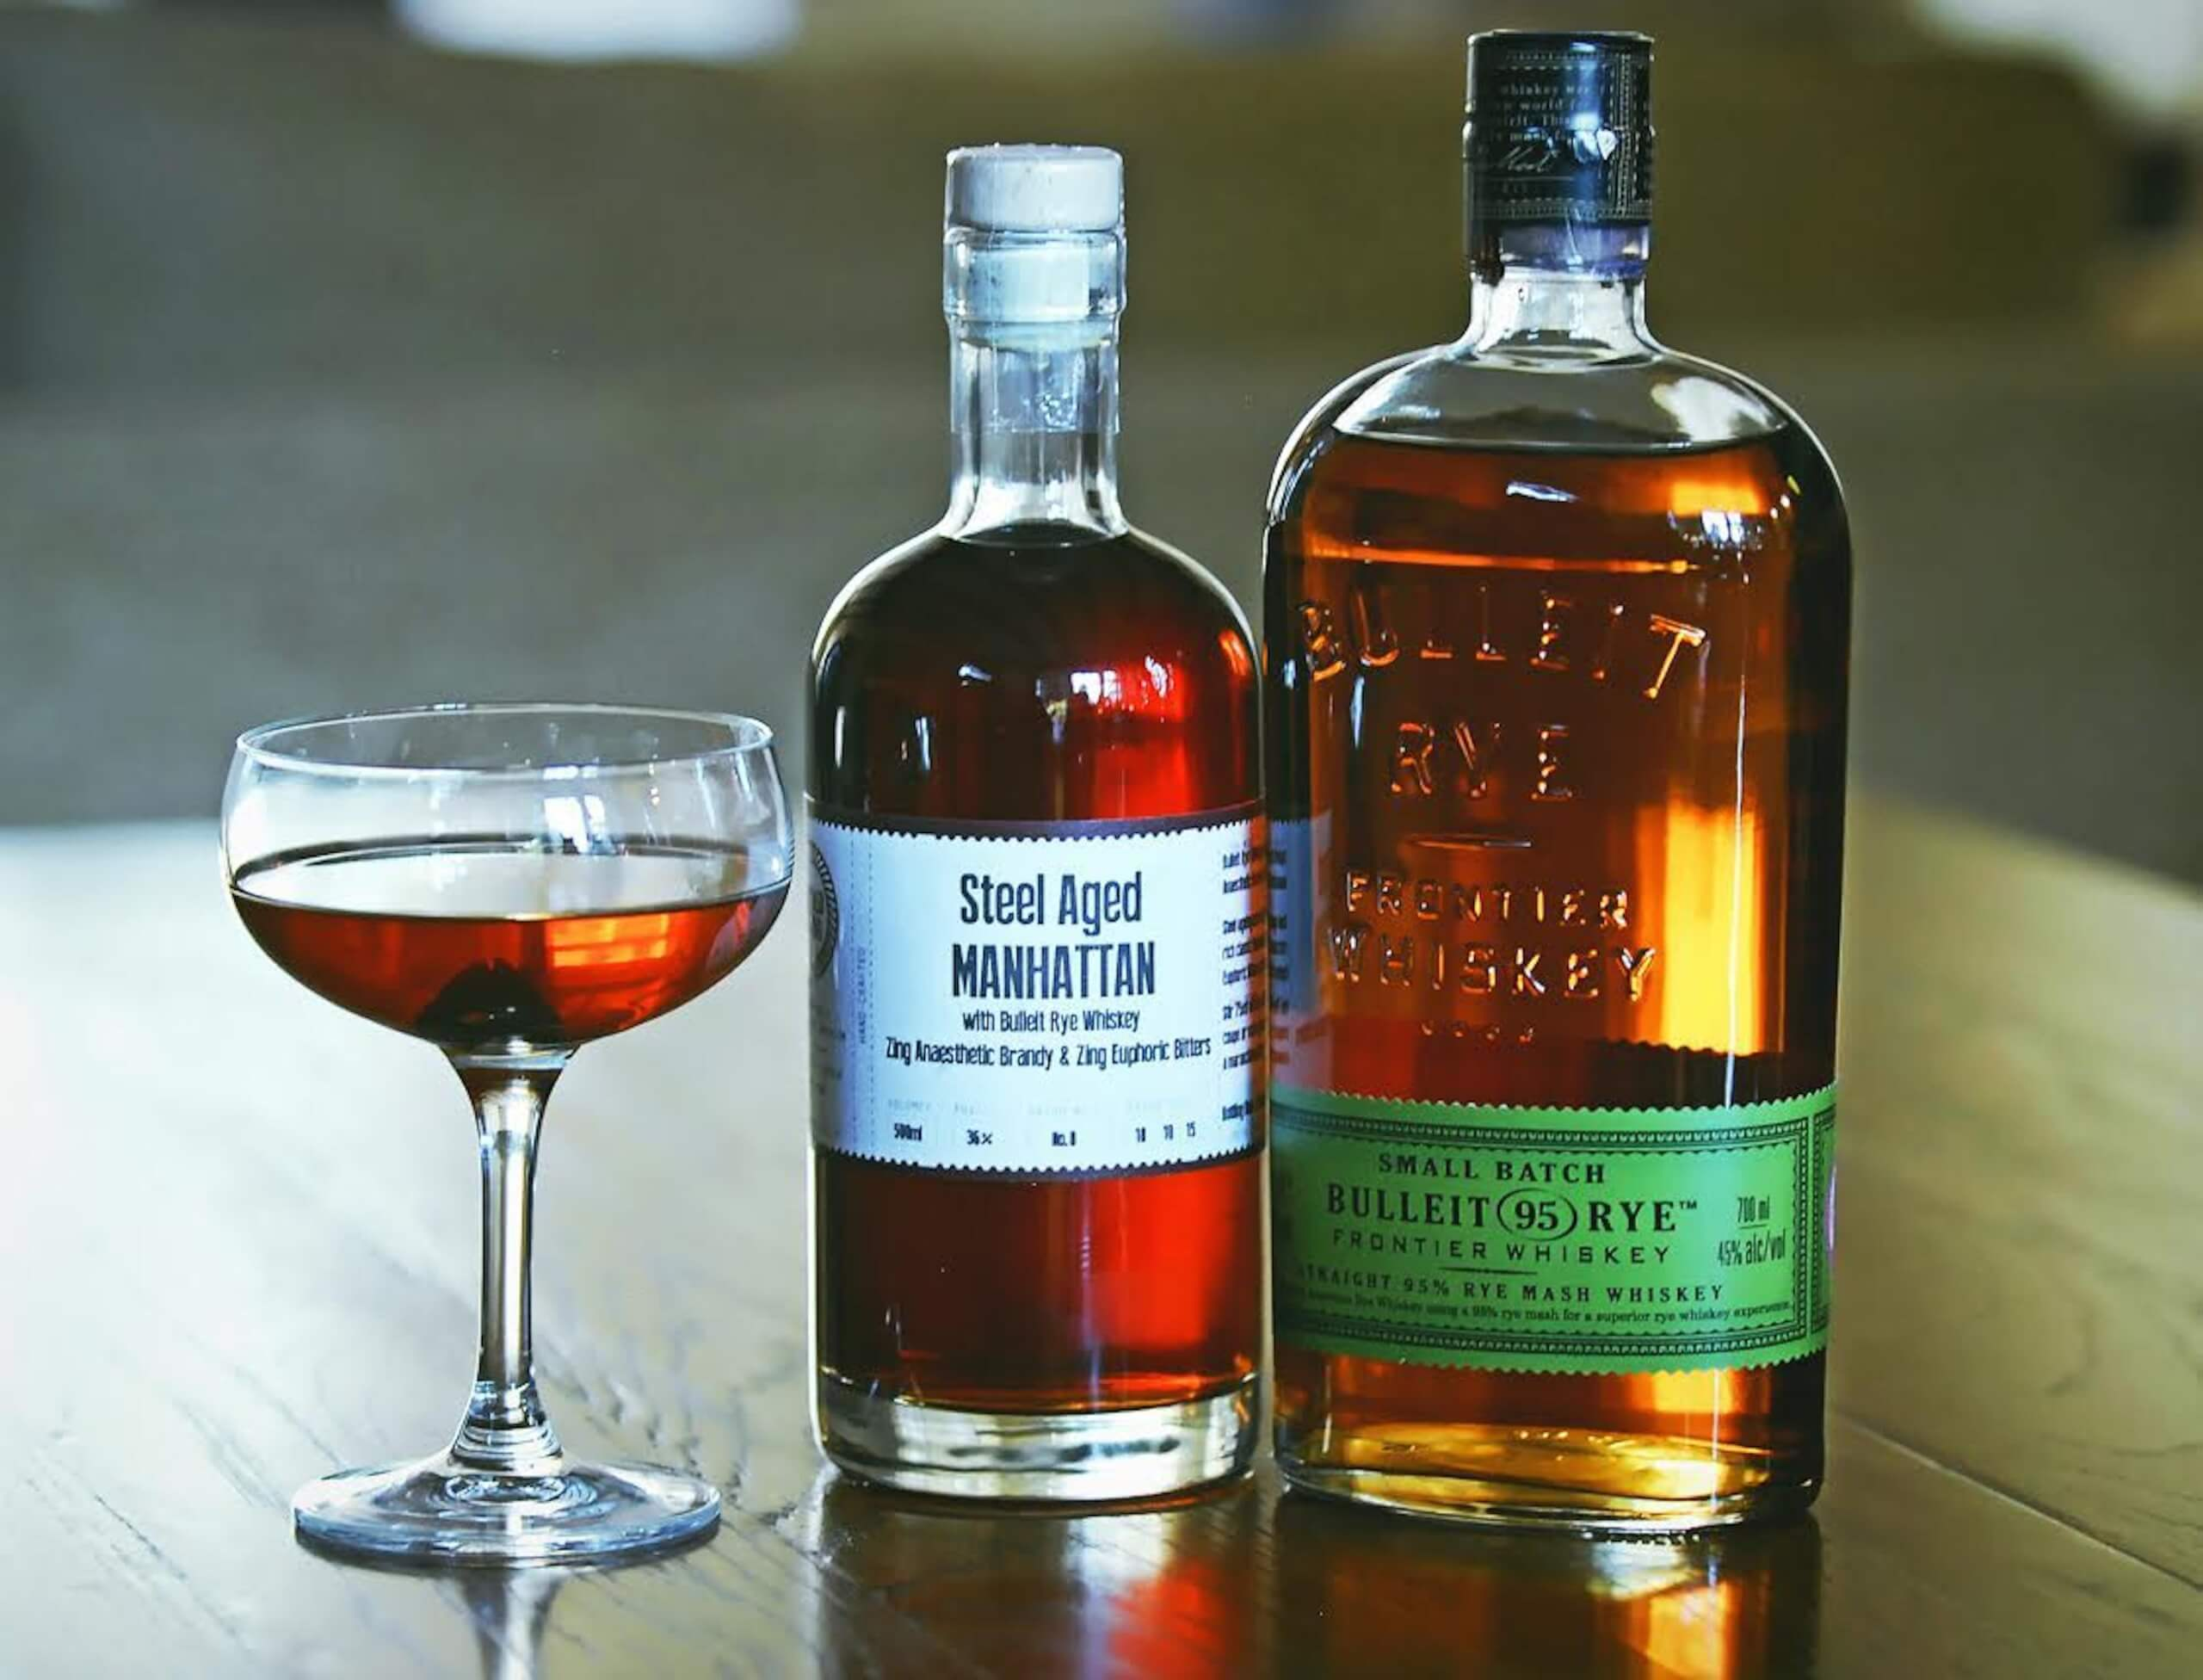 STEEL AGED BULLEIT MANHATTAN